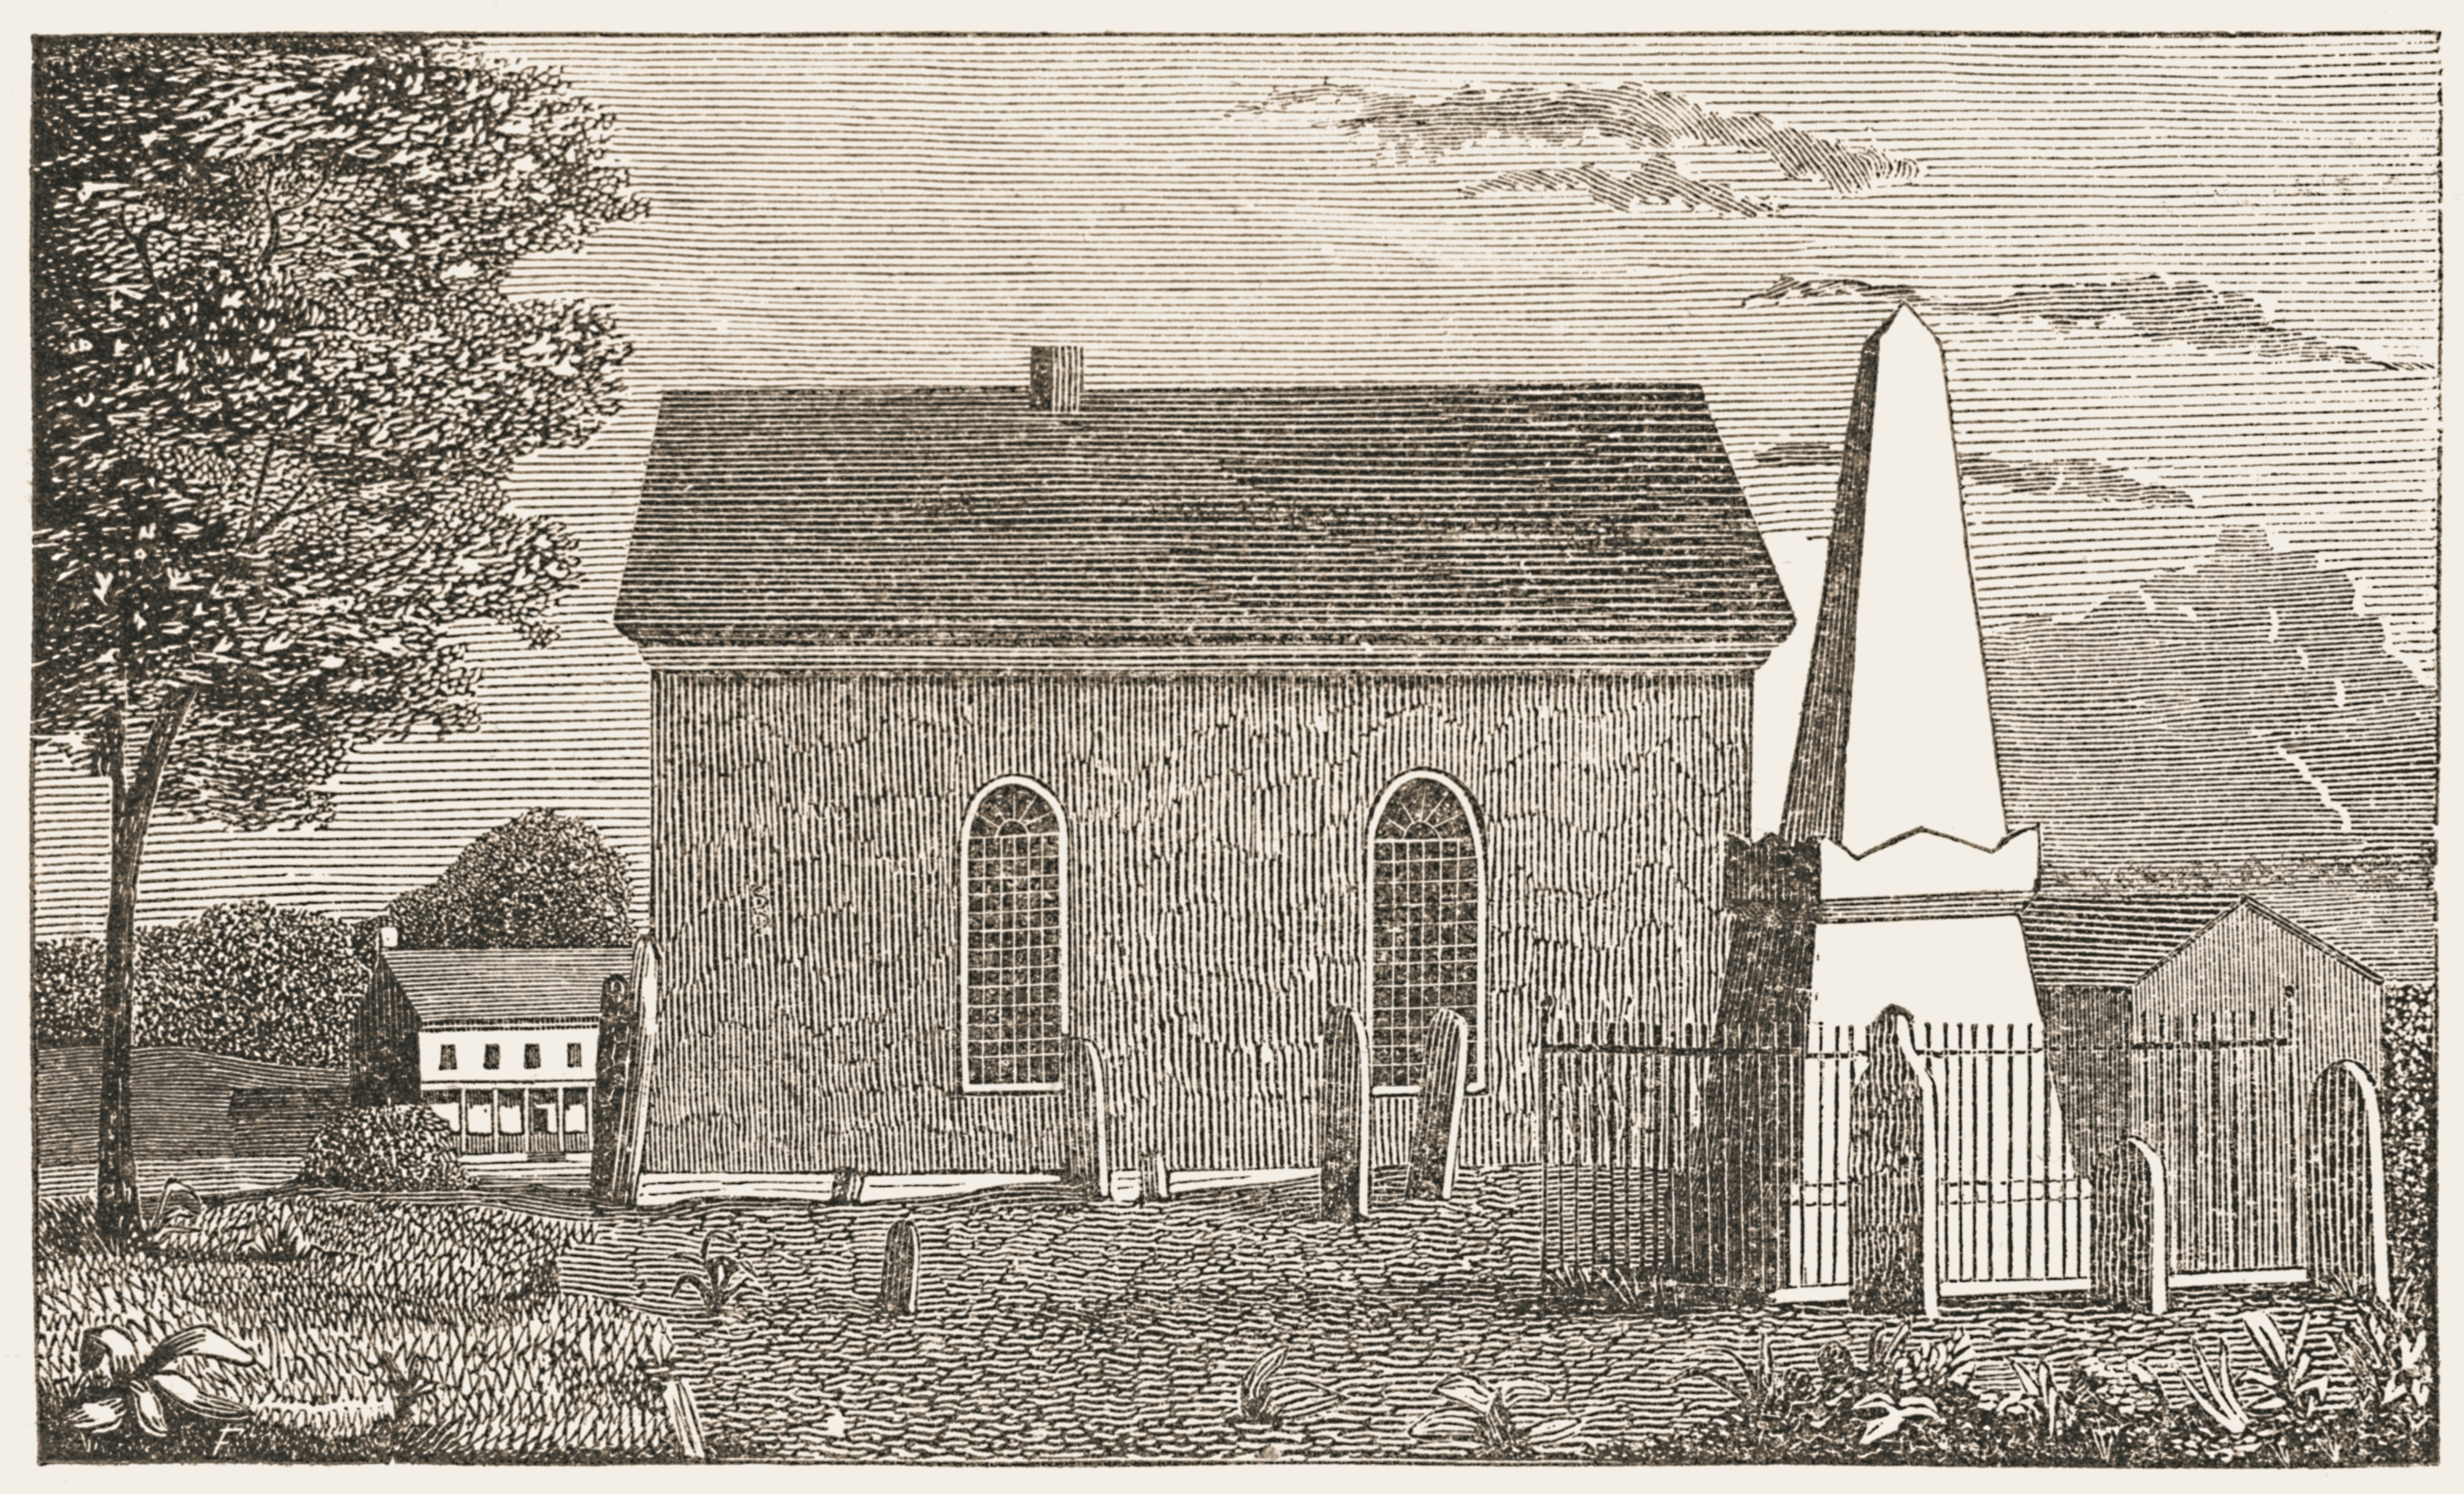 Elmsford Reformed Church and Cemetery in 1848.  The large monument stands at the grave of Isaac Van Wart.